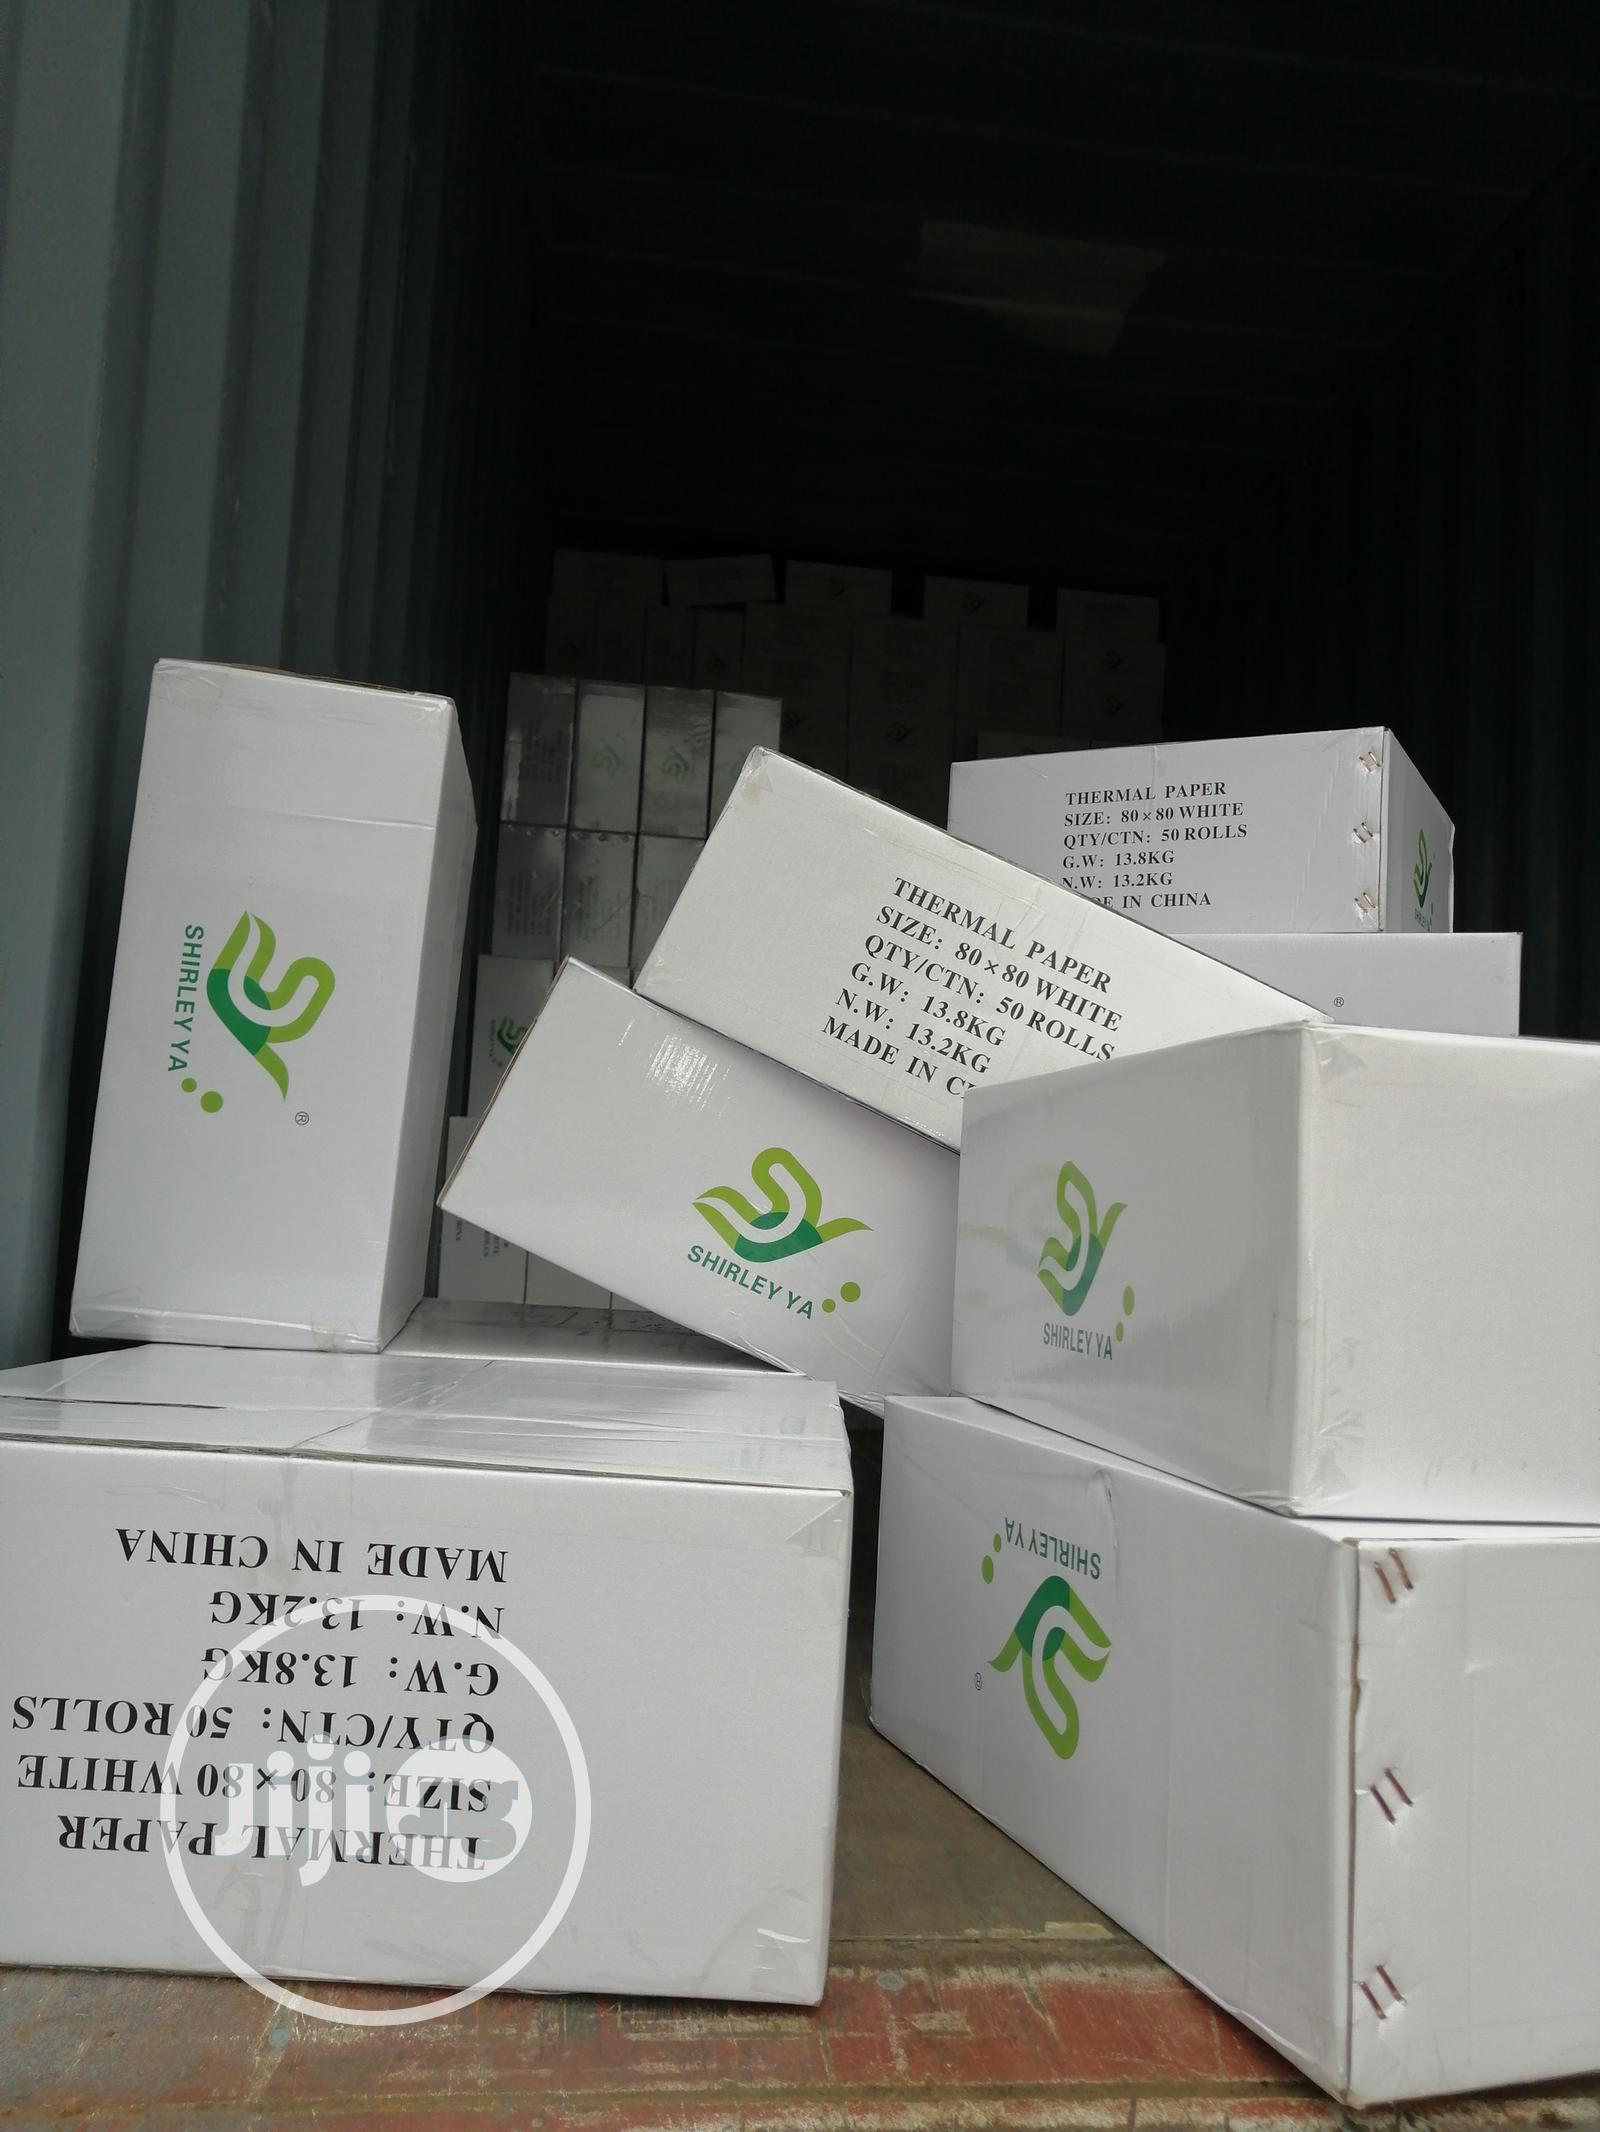 High Quality White And Colour Thermal Paper Big Size 80X80 | Stationery for sale in Onitsha, Anambra State, Nigeria